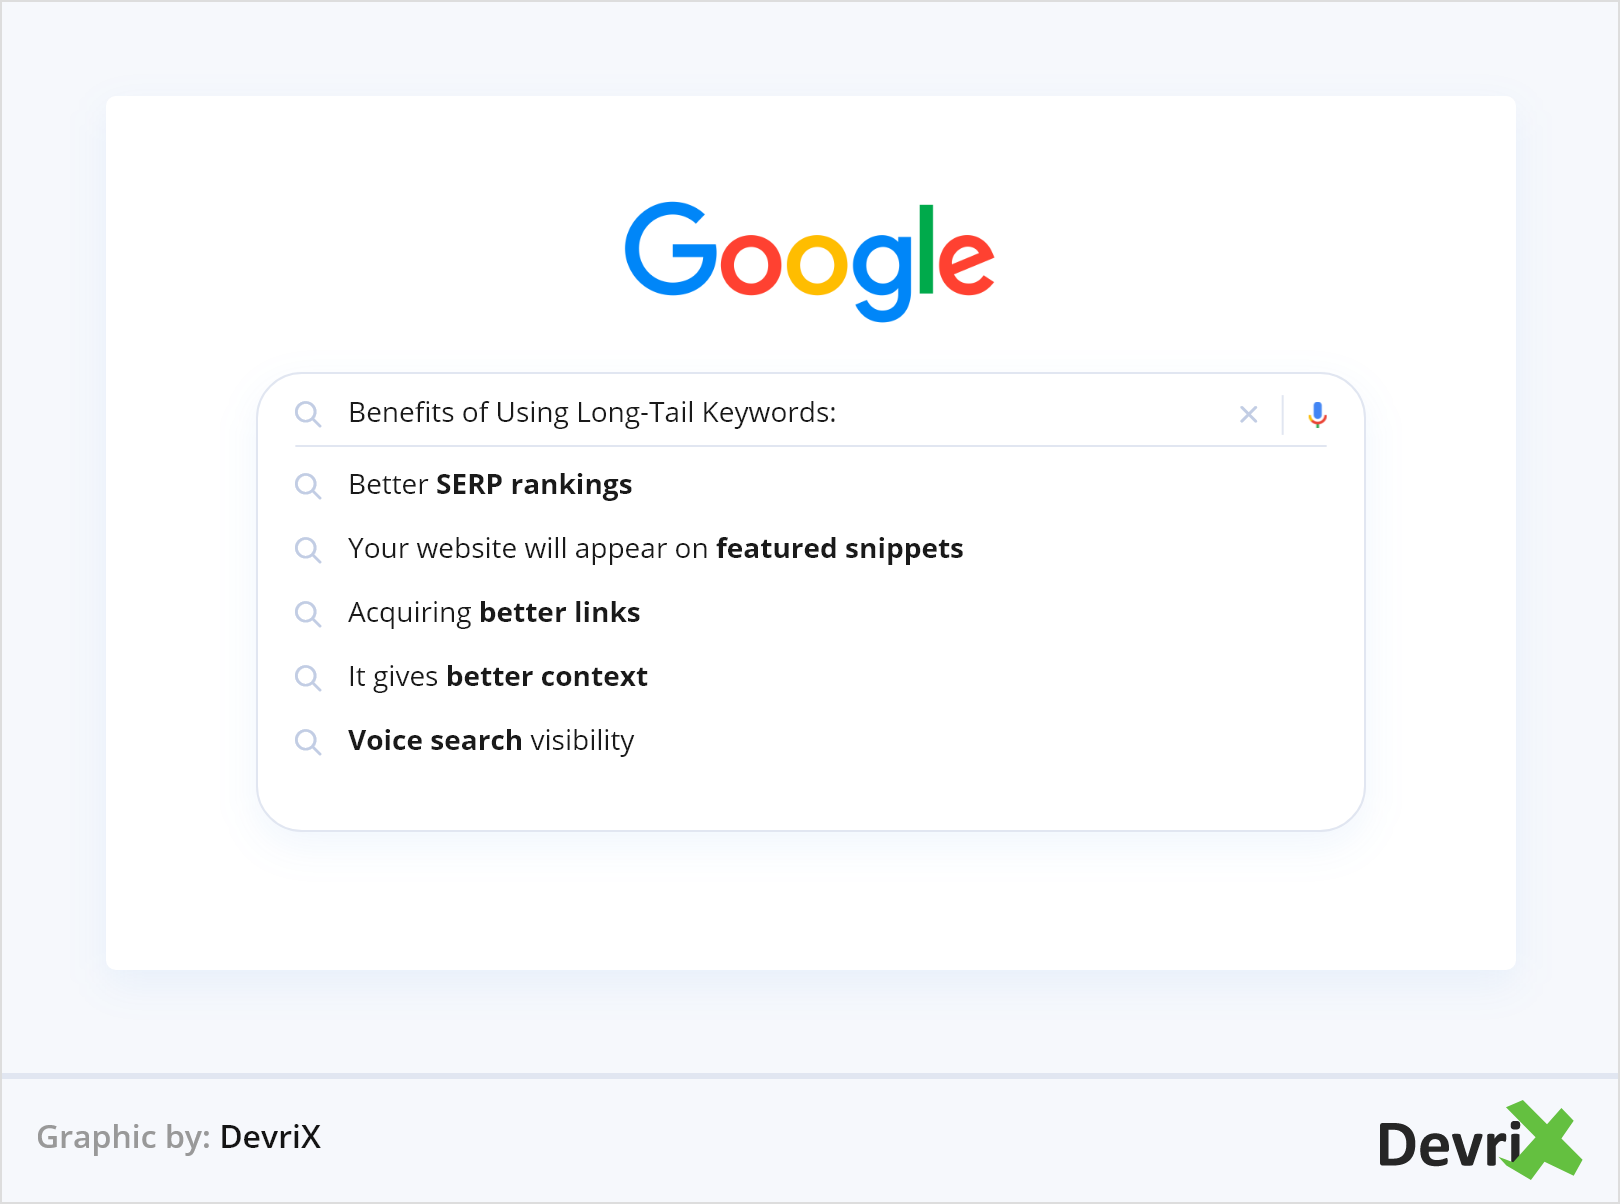 Benefits of Using Long-Tail Keywords@2x